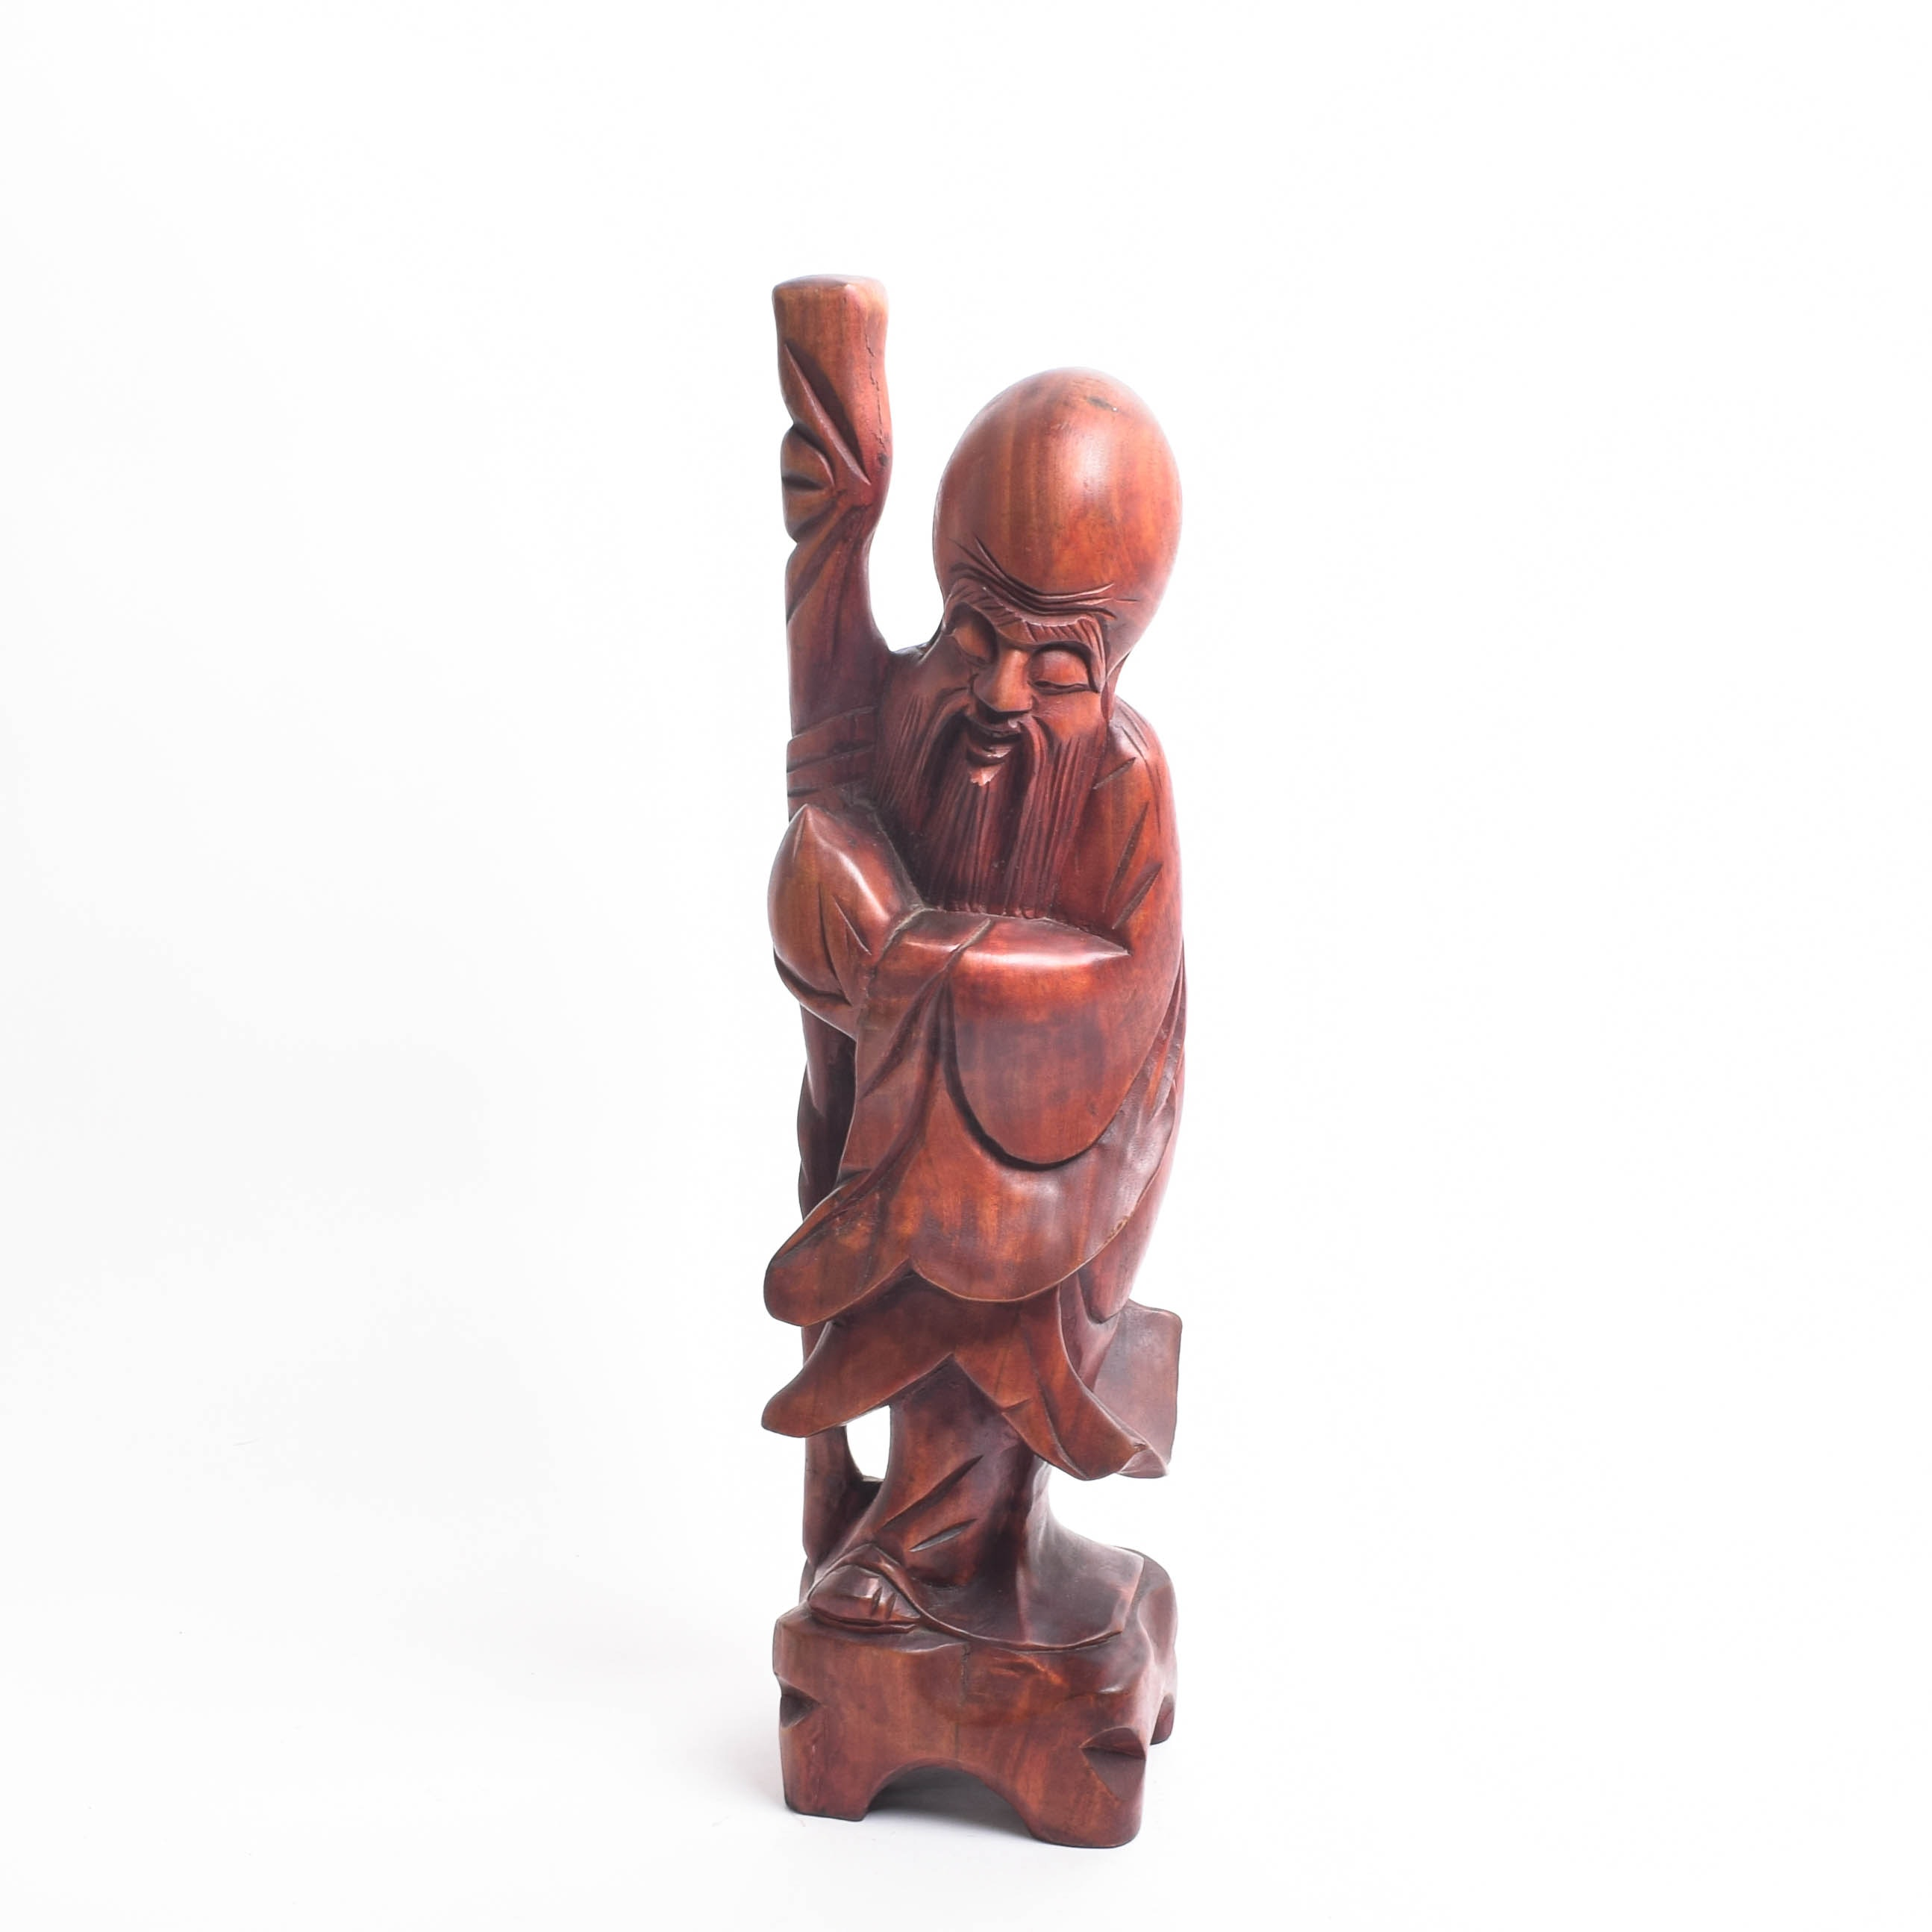 Chinese Rosewood Figurine of Shou Xin Gong